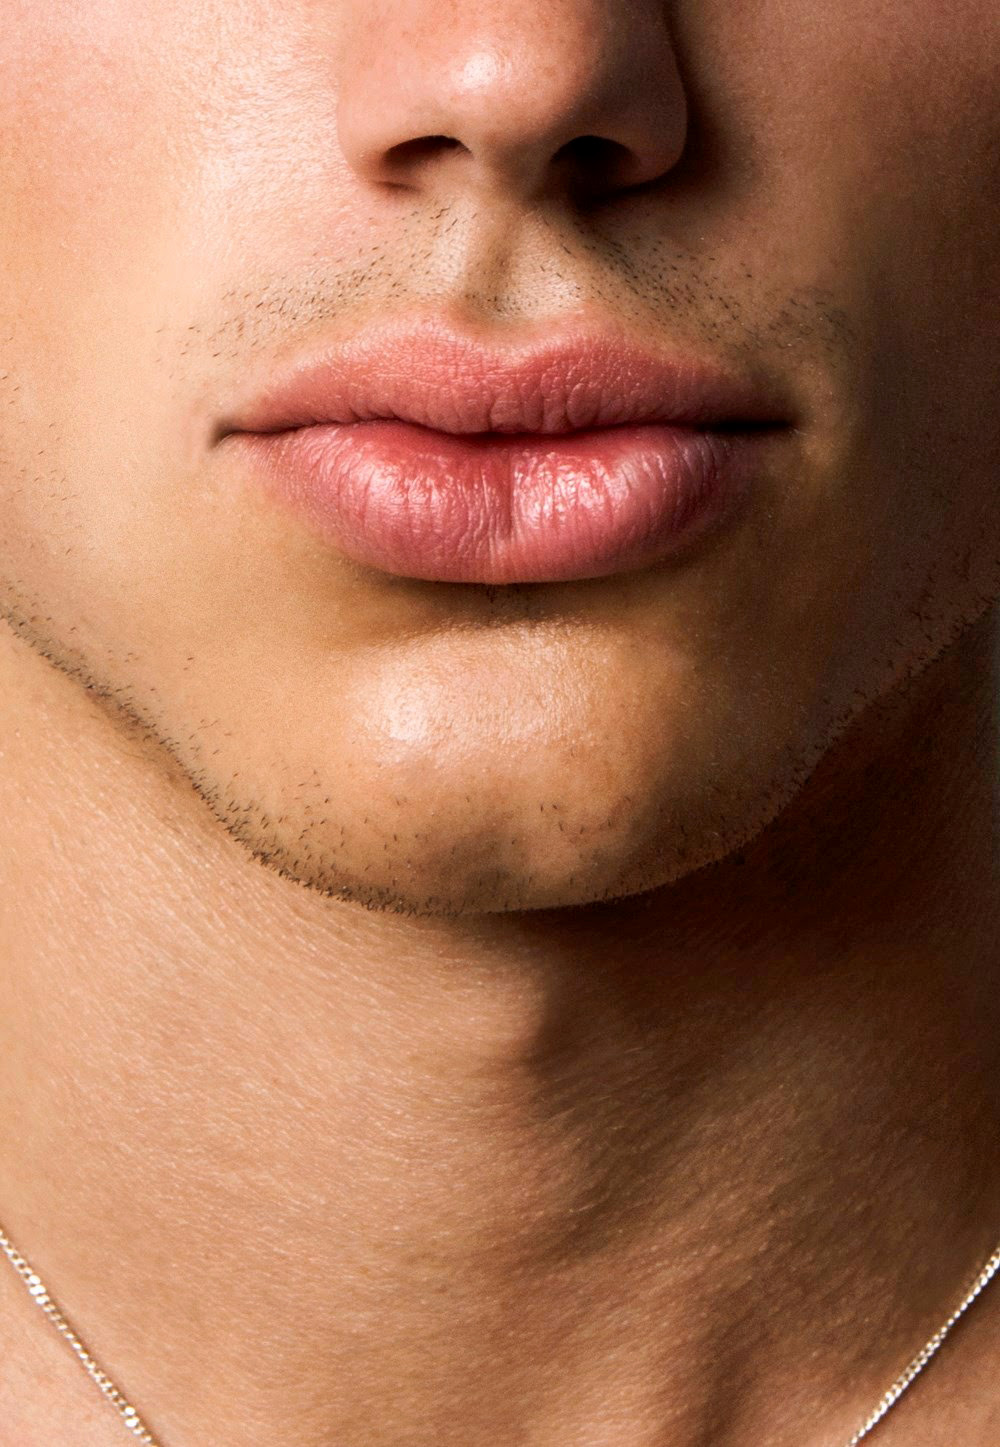 poutable lips.jpg